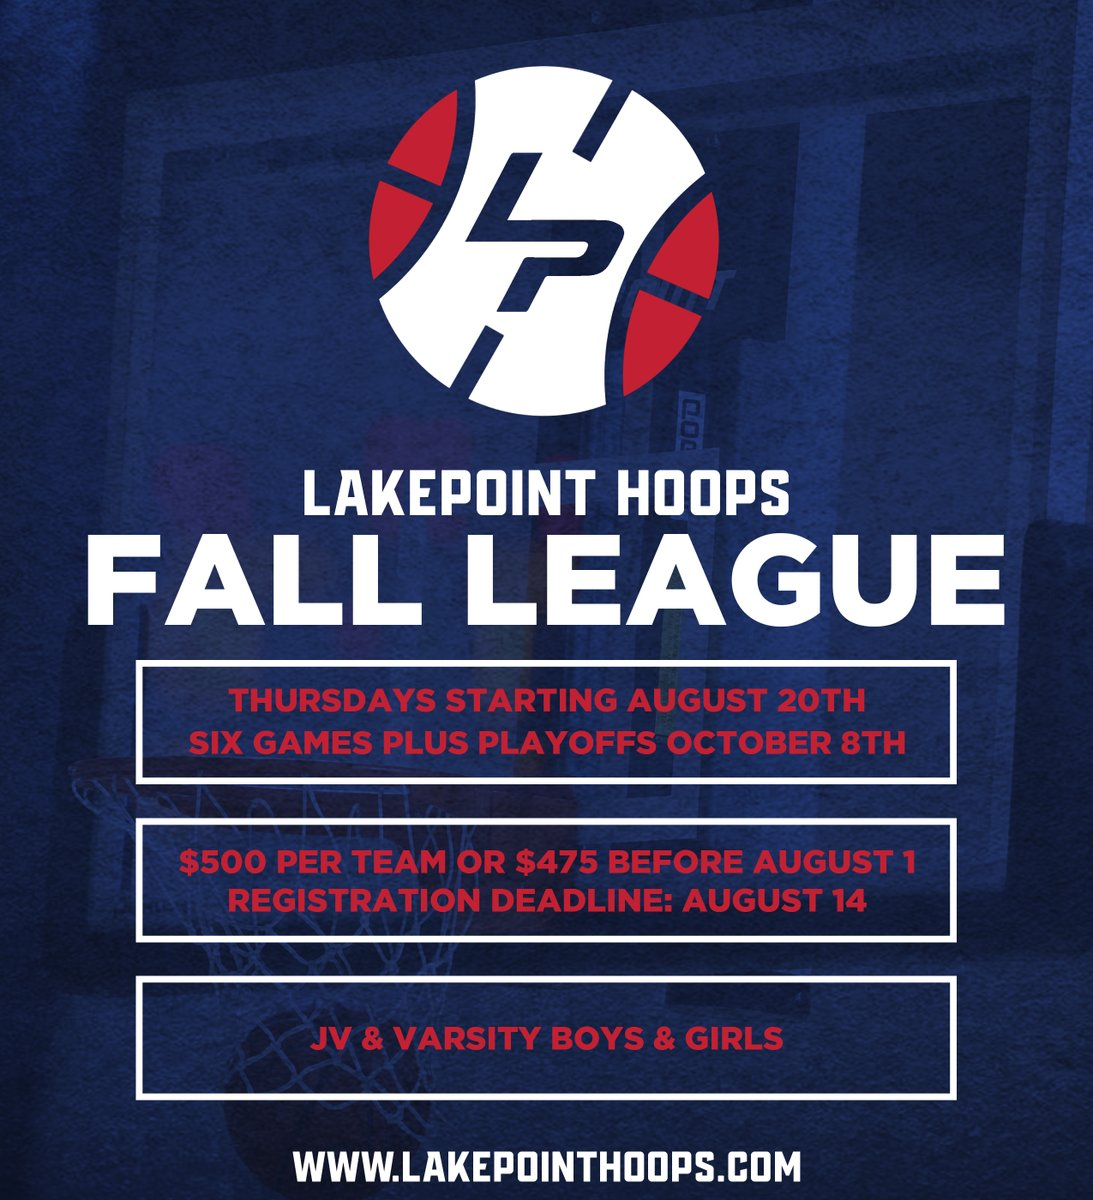 Friday is the deadline to register for the #LakePointHoops Fall League. We're just about full, so get locked in today!  Register: https://t.co/x2uZX0WNlb https://t.co/pYCg5Pa7qU